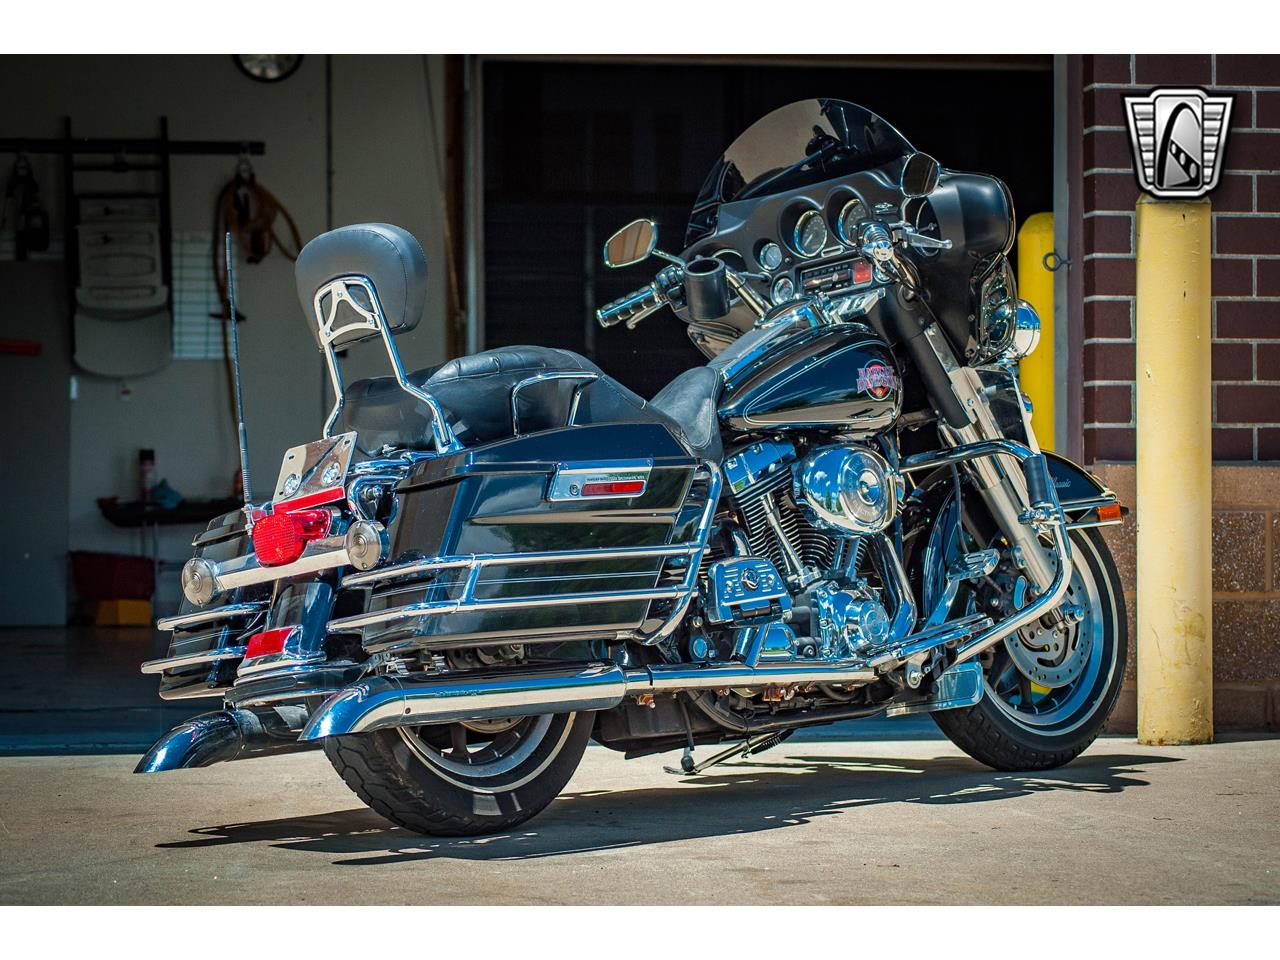 2004 Harley-Davidson Motorcycle for sale in O'Fallon, IL – photo 50